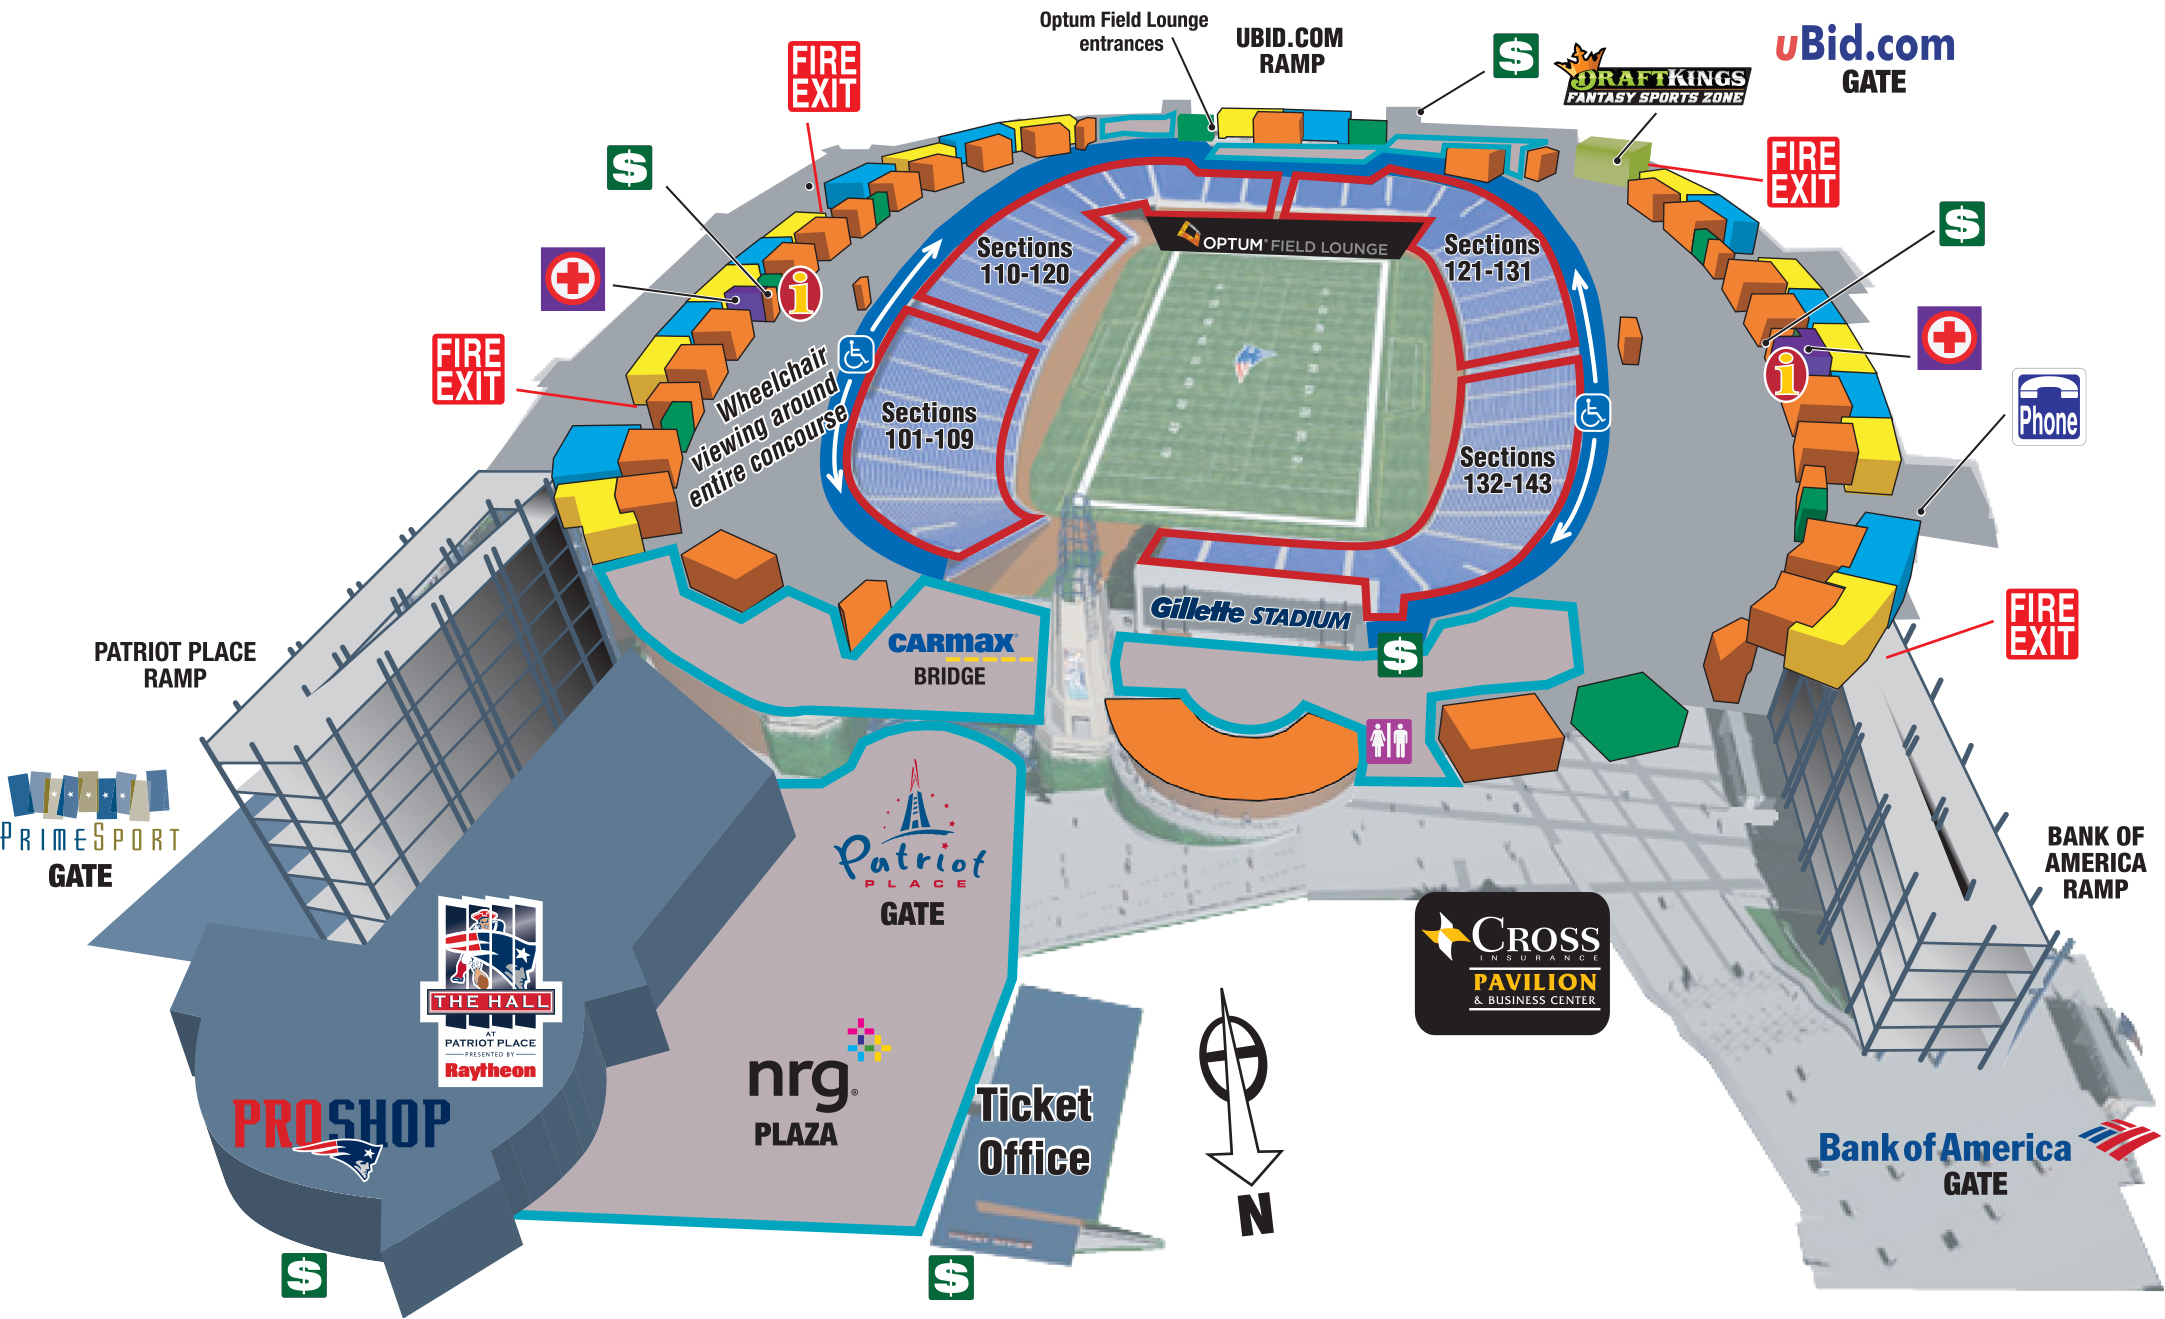 Seating charts maps gillette stadium